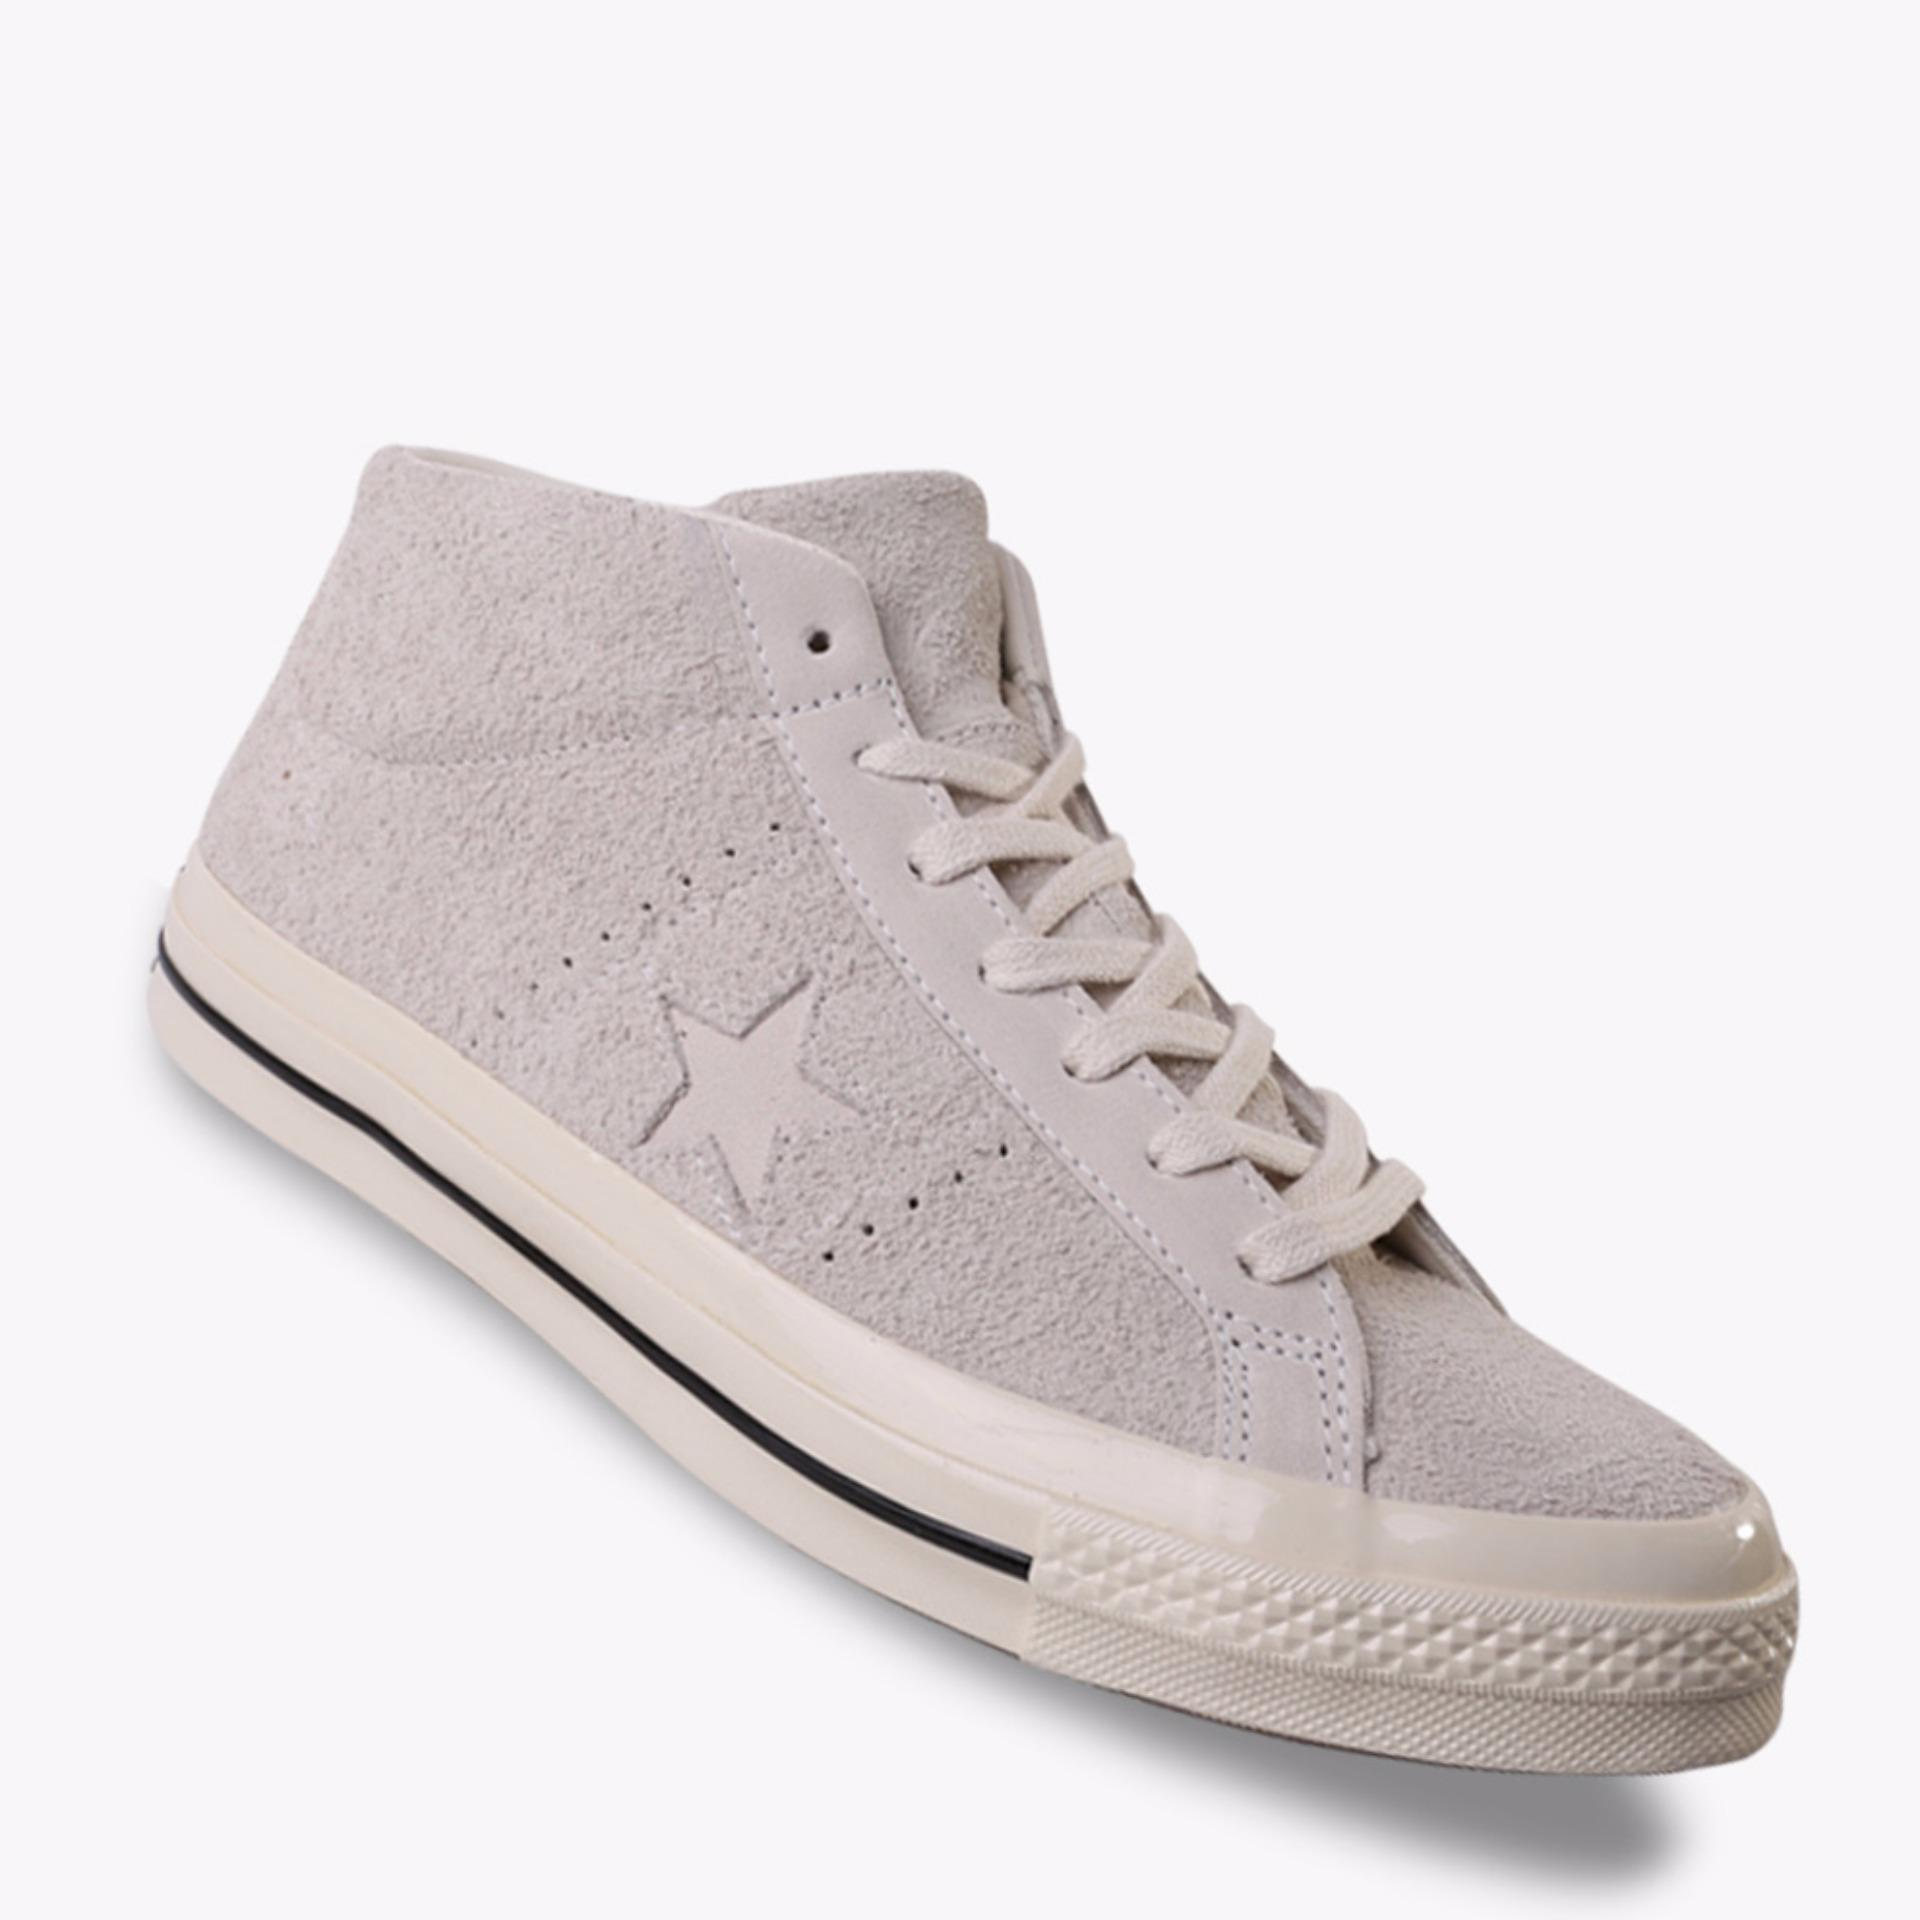 Converse One Star Mid Suede Men's Sneakers Shoes - Putih .